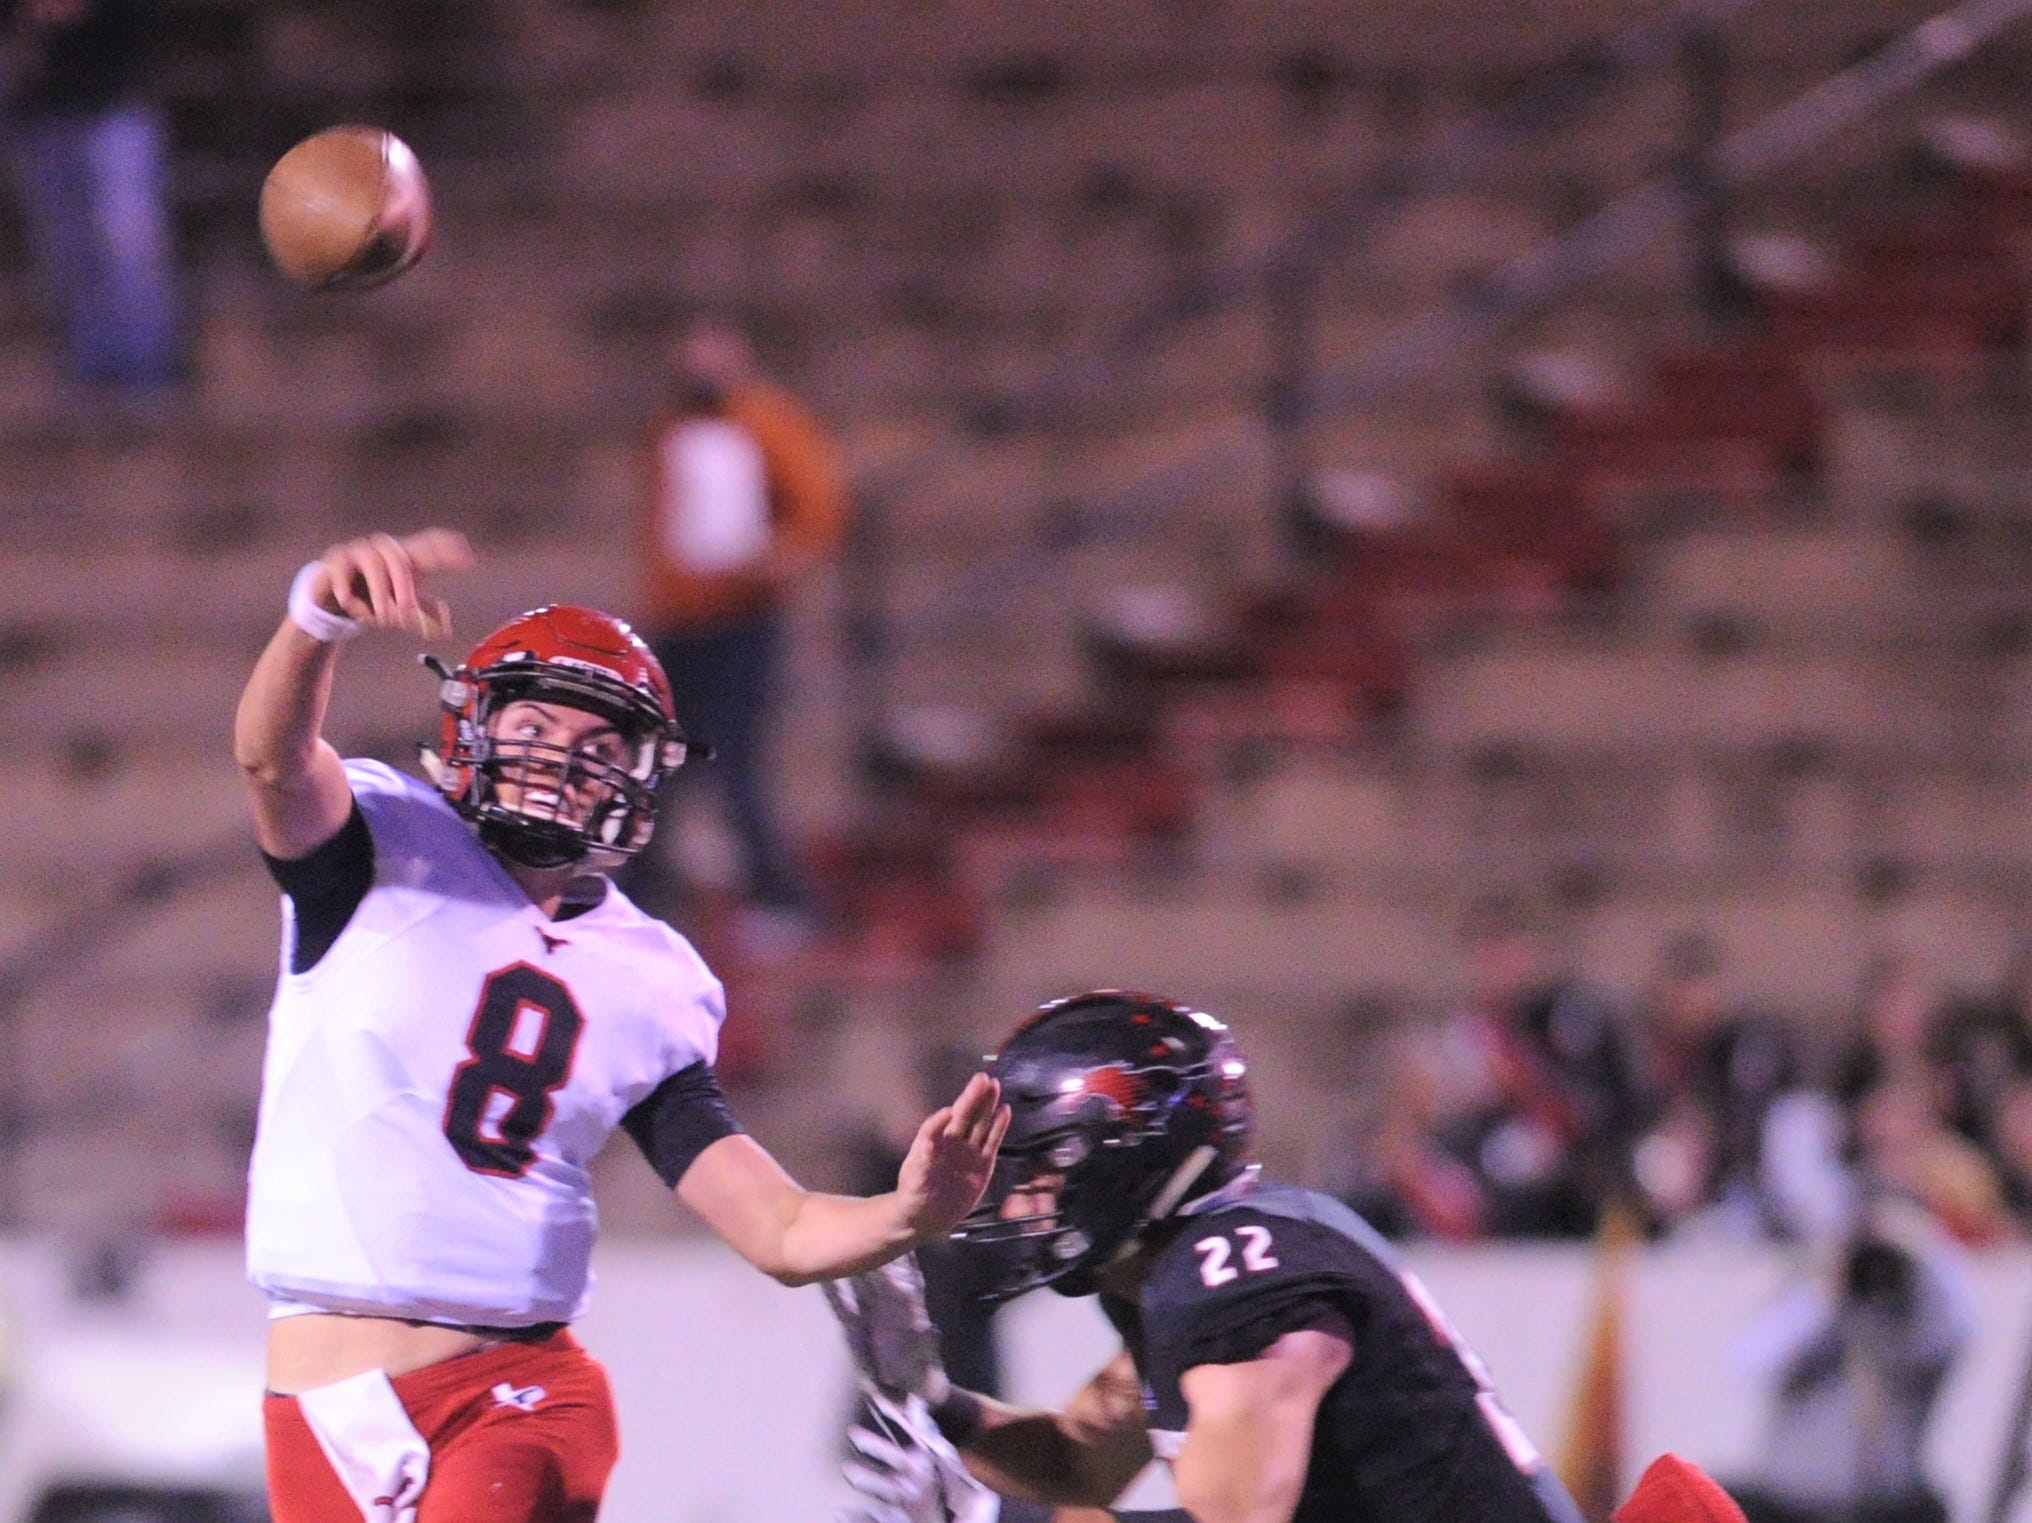 Eastland quarterback Behren Morton, left, throws a pass as Shallowater's Hayden Vanderroest applies pressure. Shallowater beat the Mavericks in the Region I-3A Division I semifinal playoff game Thursday, Nov. 29, 2018, at the Mustang Bowl in Sweetwater.